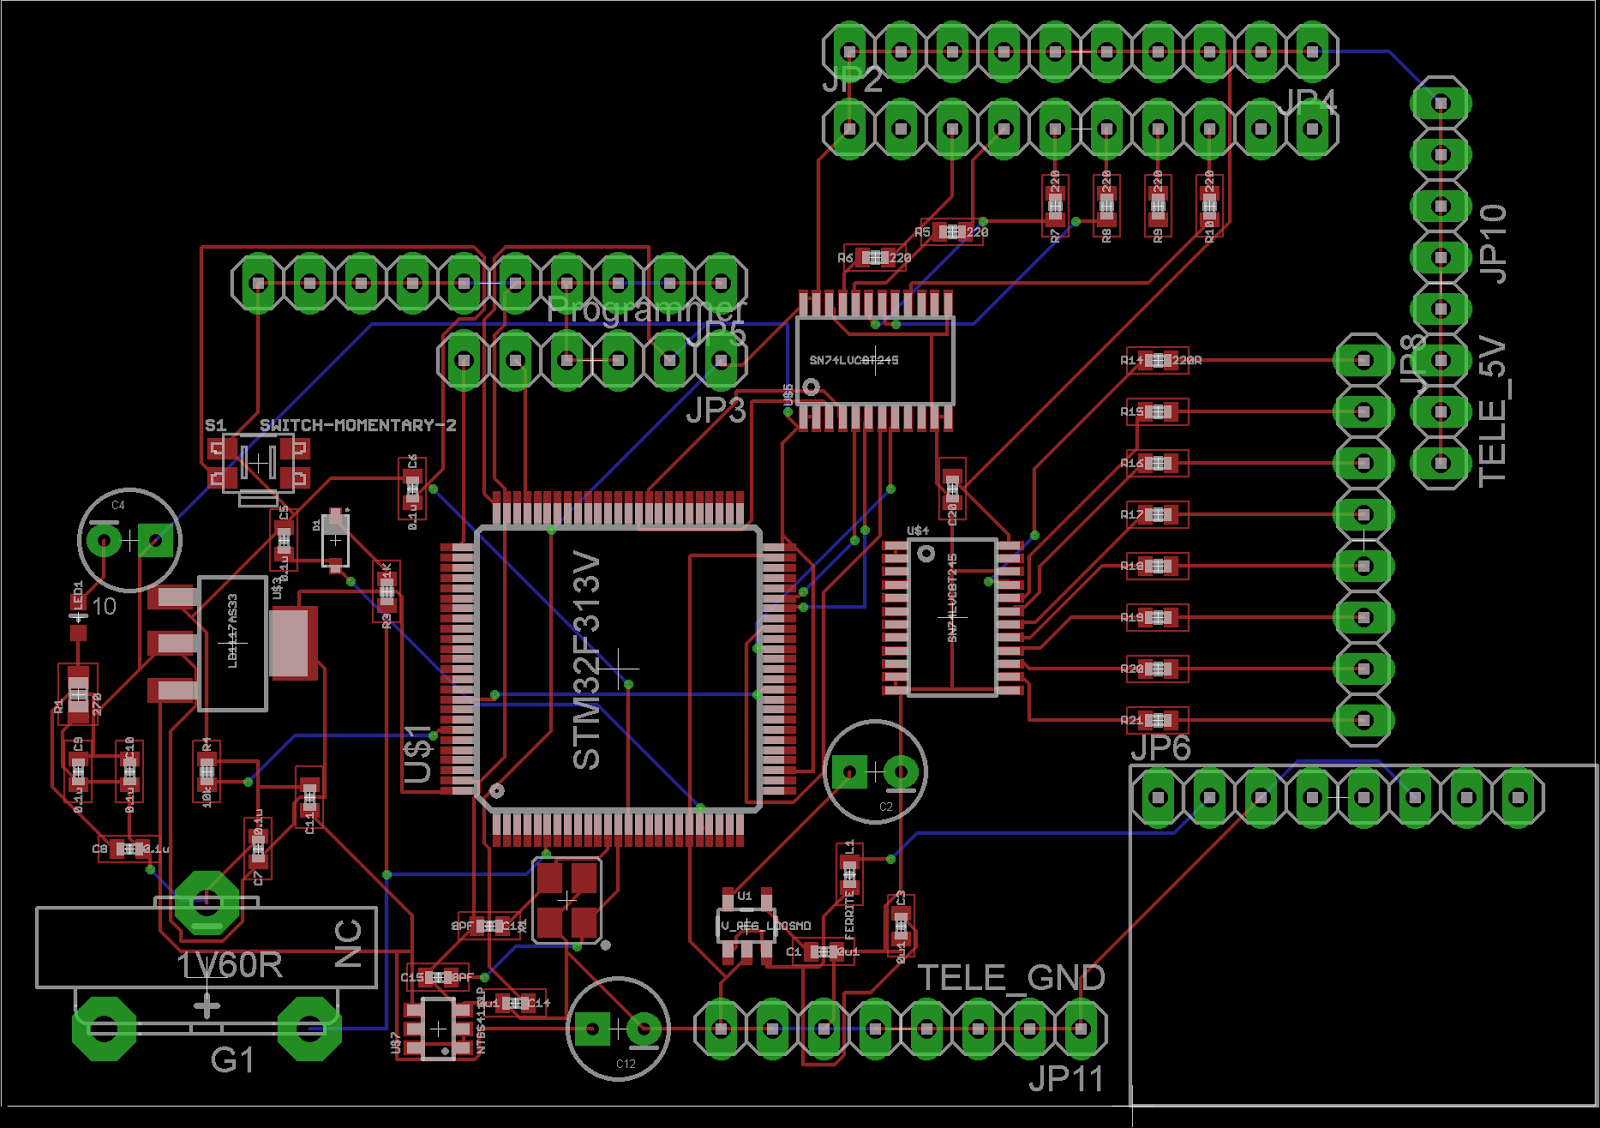 Bli 2 Layer Eagle Pcb For Stm32f3 Version Flight Controller Design Including Schematic Capture Board Layout And Autorouter Heres The Generated By Auto Router From